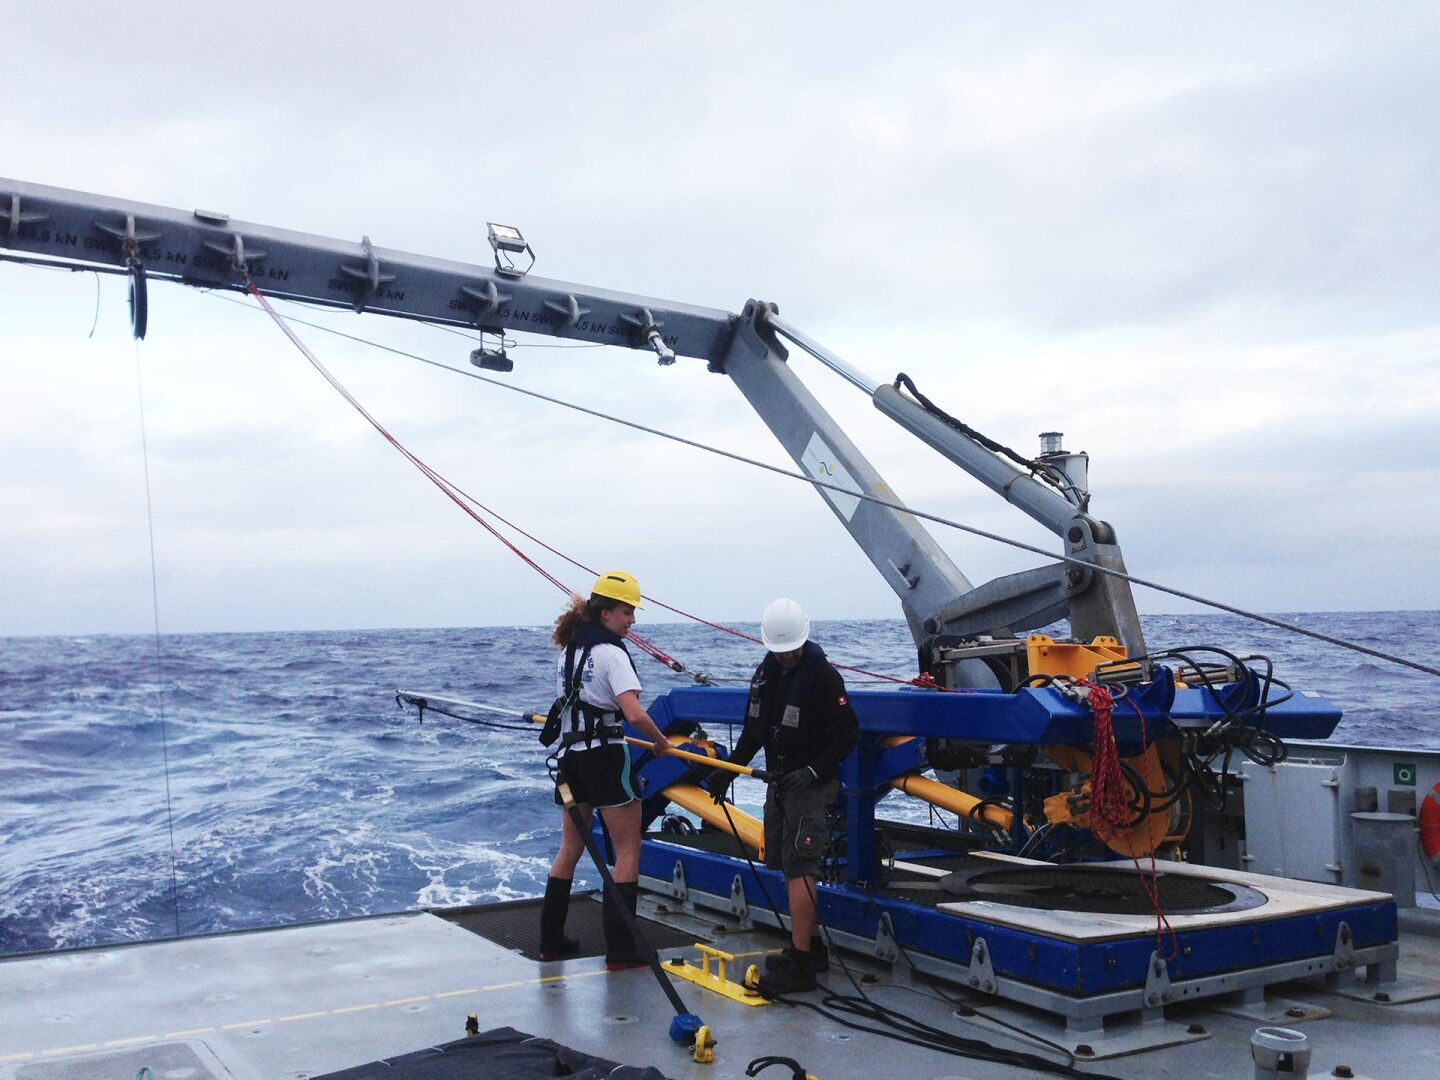 Students retrieve the CTD from the water. | Naomi Levine